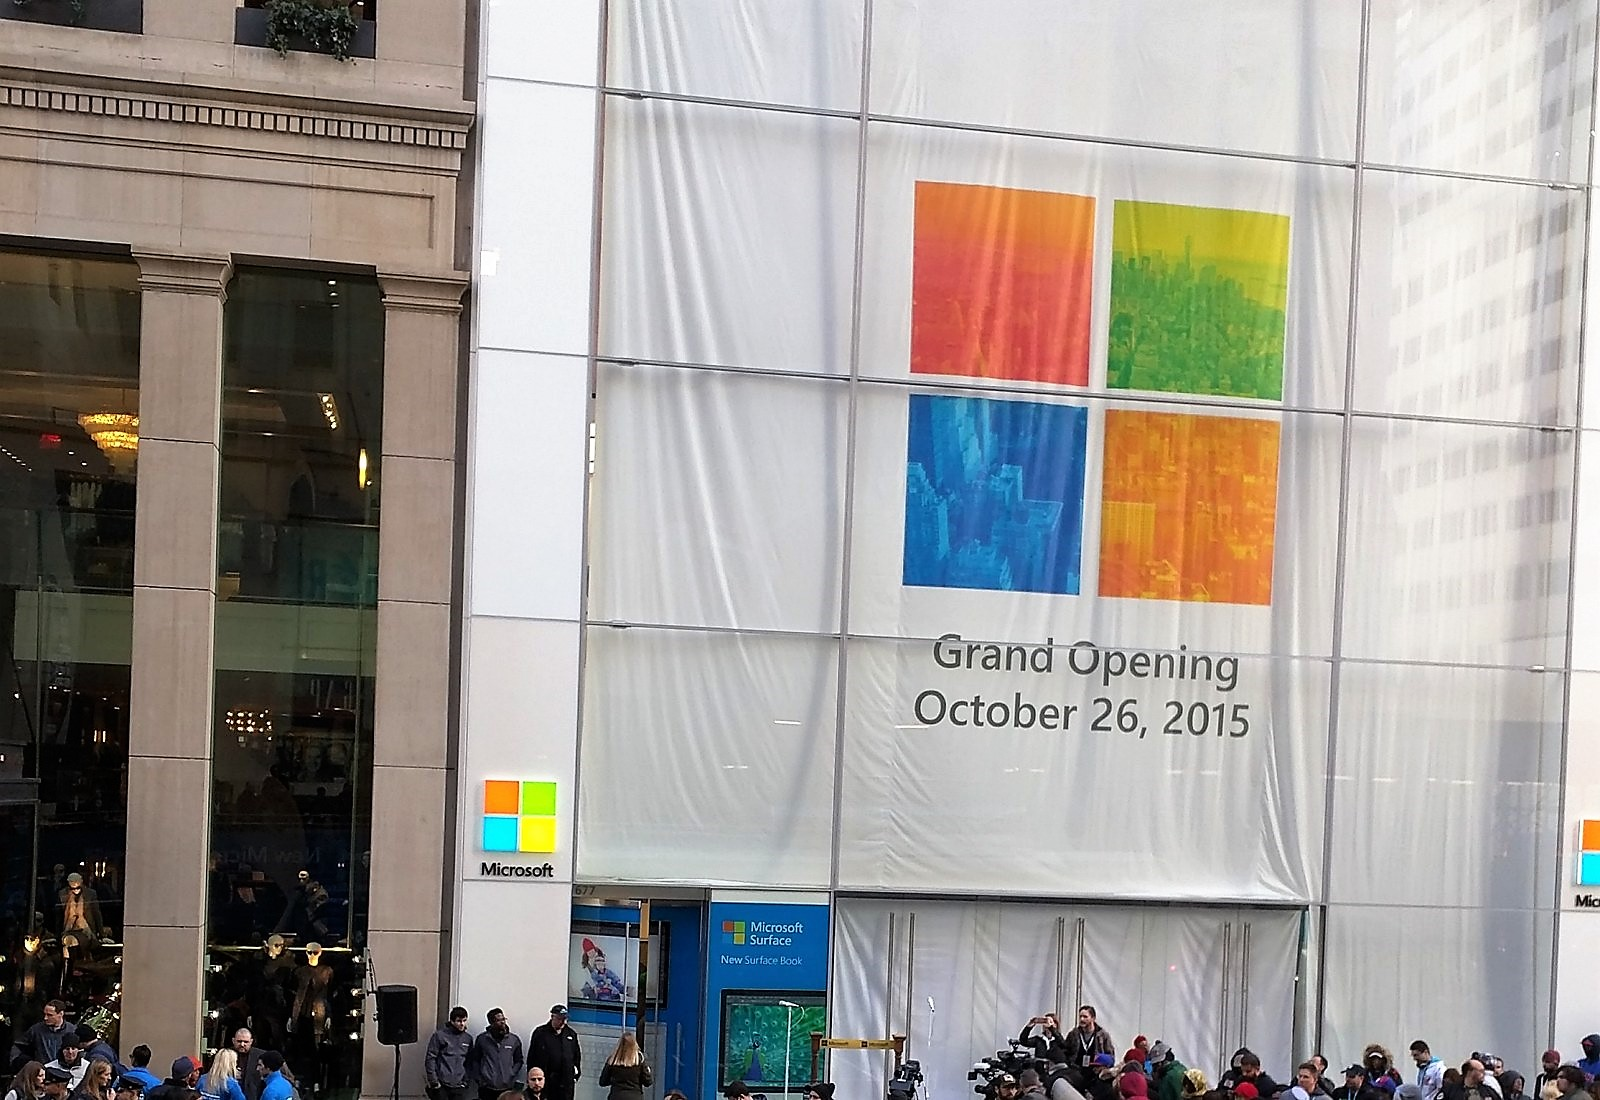 Microsoft logo at Store grand opening in 2016